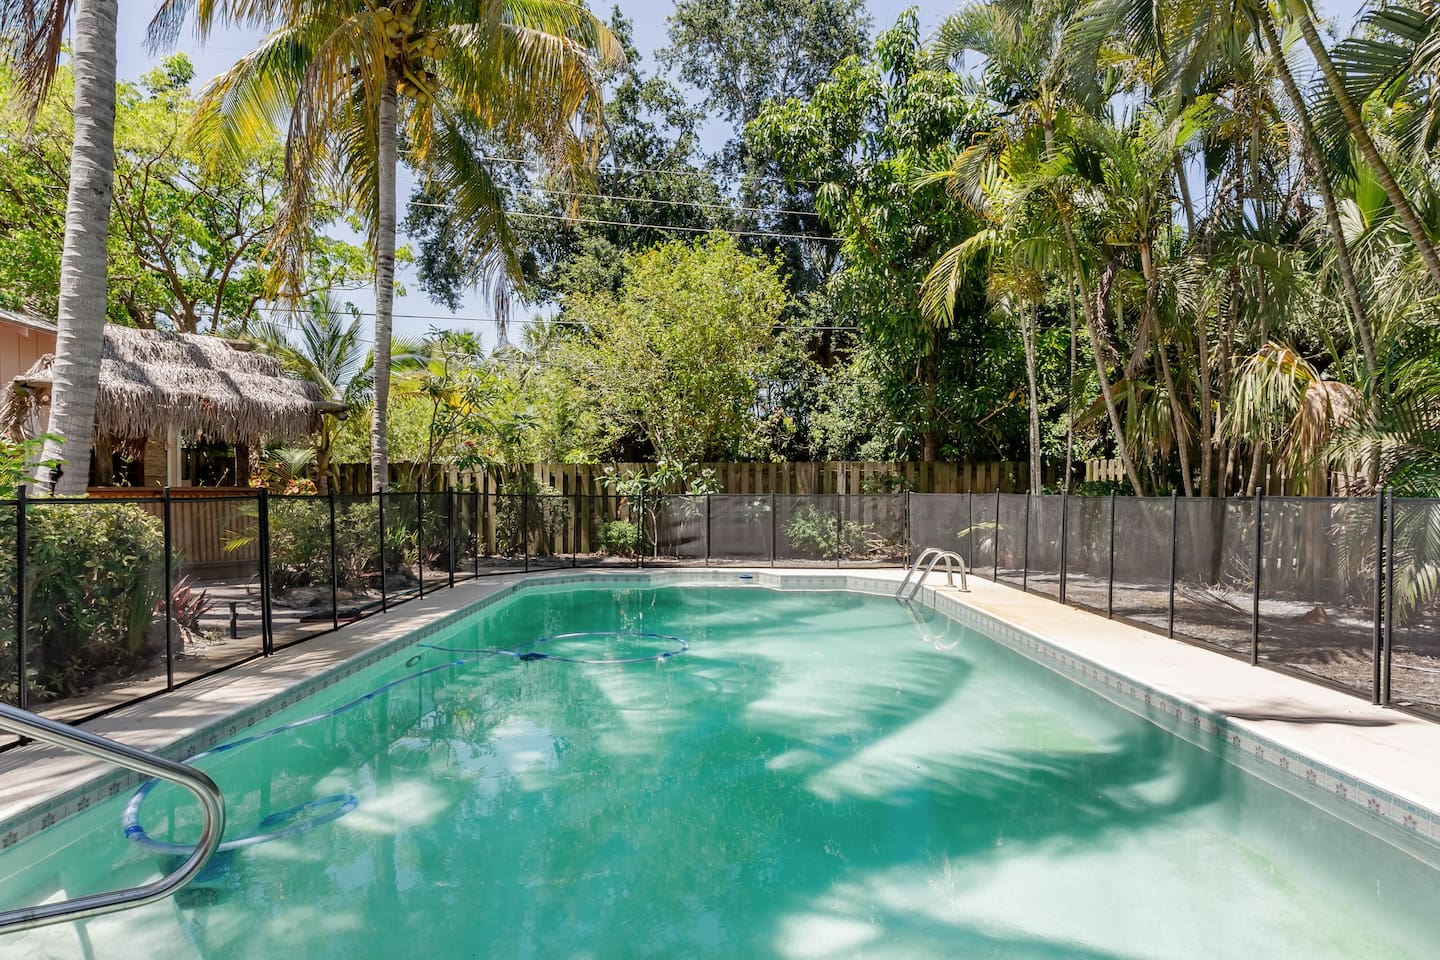 Florida Airbnb With Pool